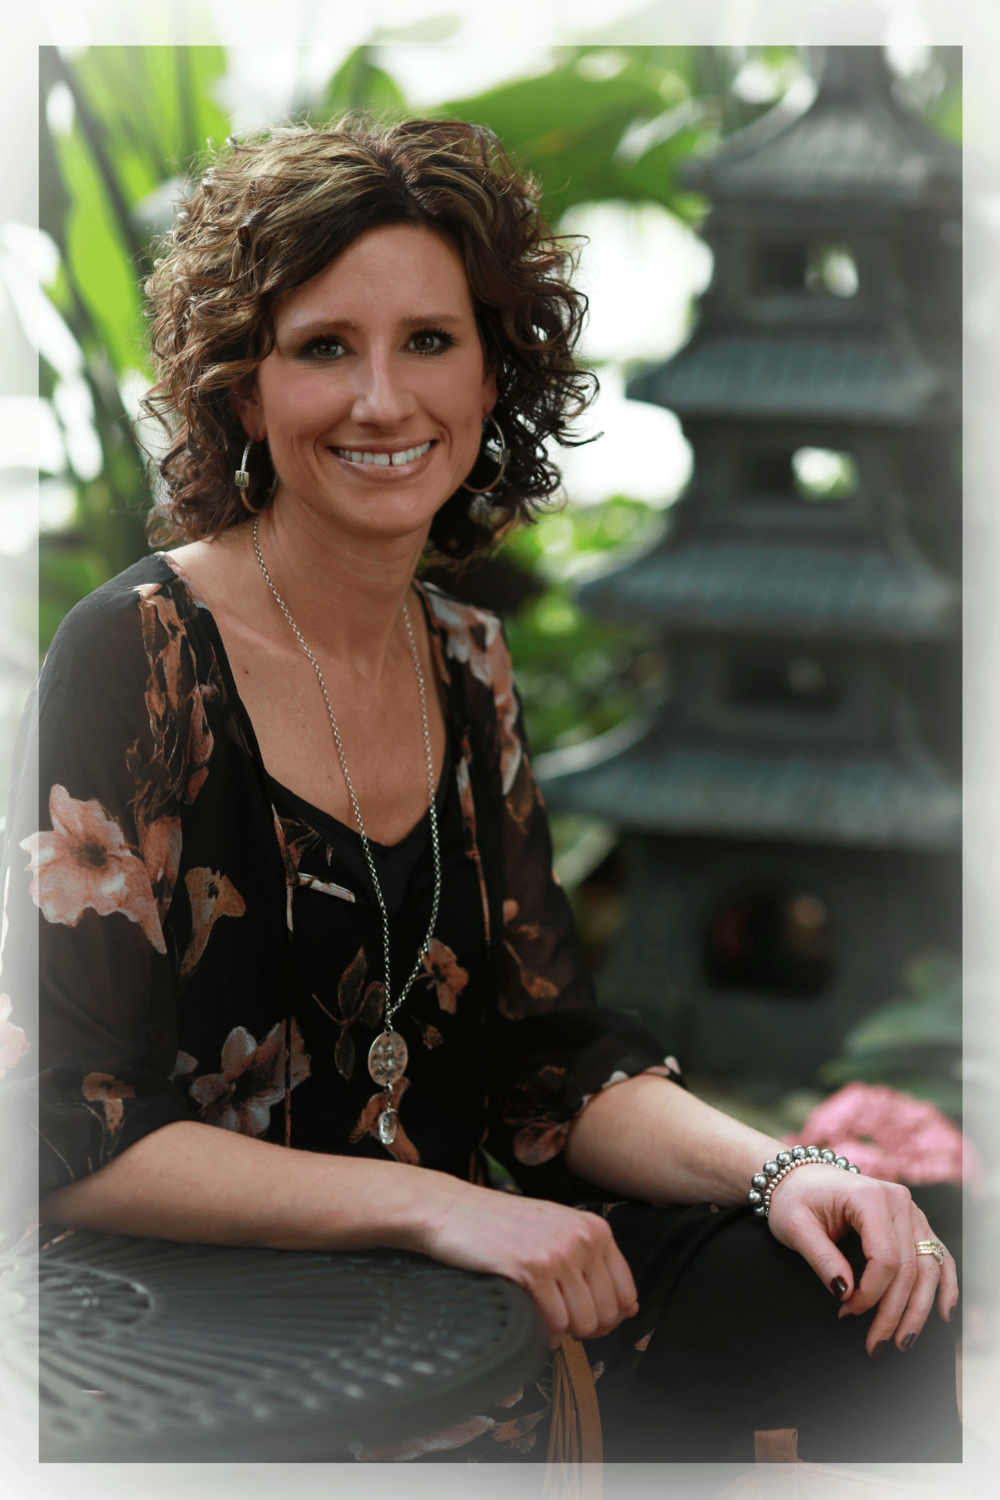 Learn More About Denise Barry, Master Empowerment Coach